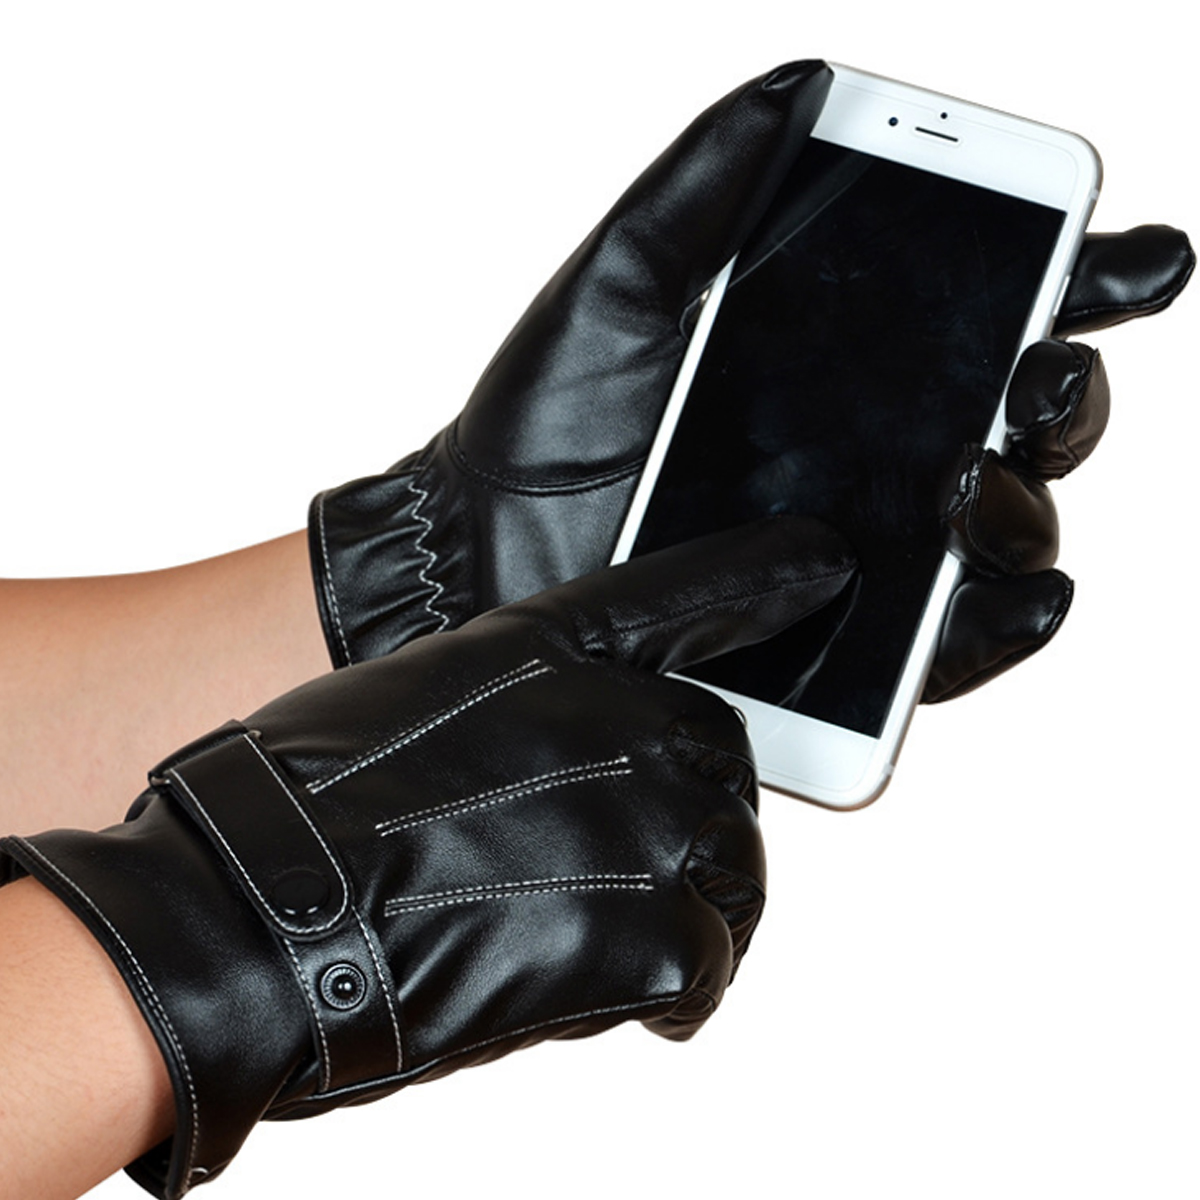 Winter Warm Thermal Leather Gloves Touch Screen Cycling Skiing Snow Snowboard Gloves